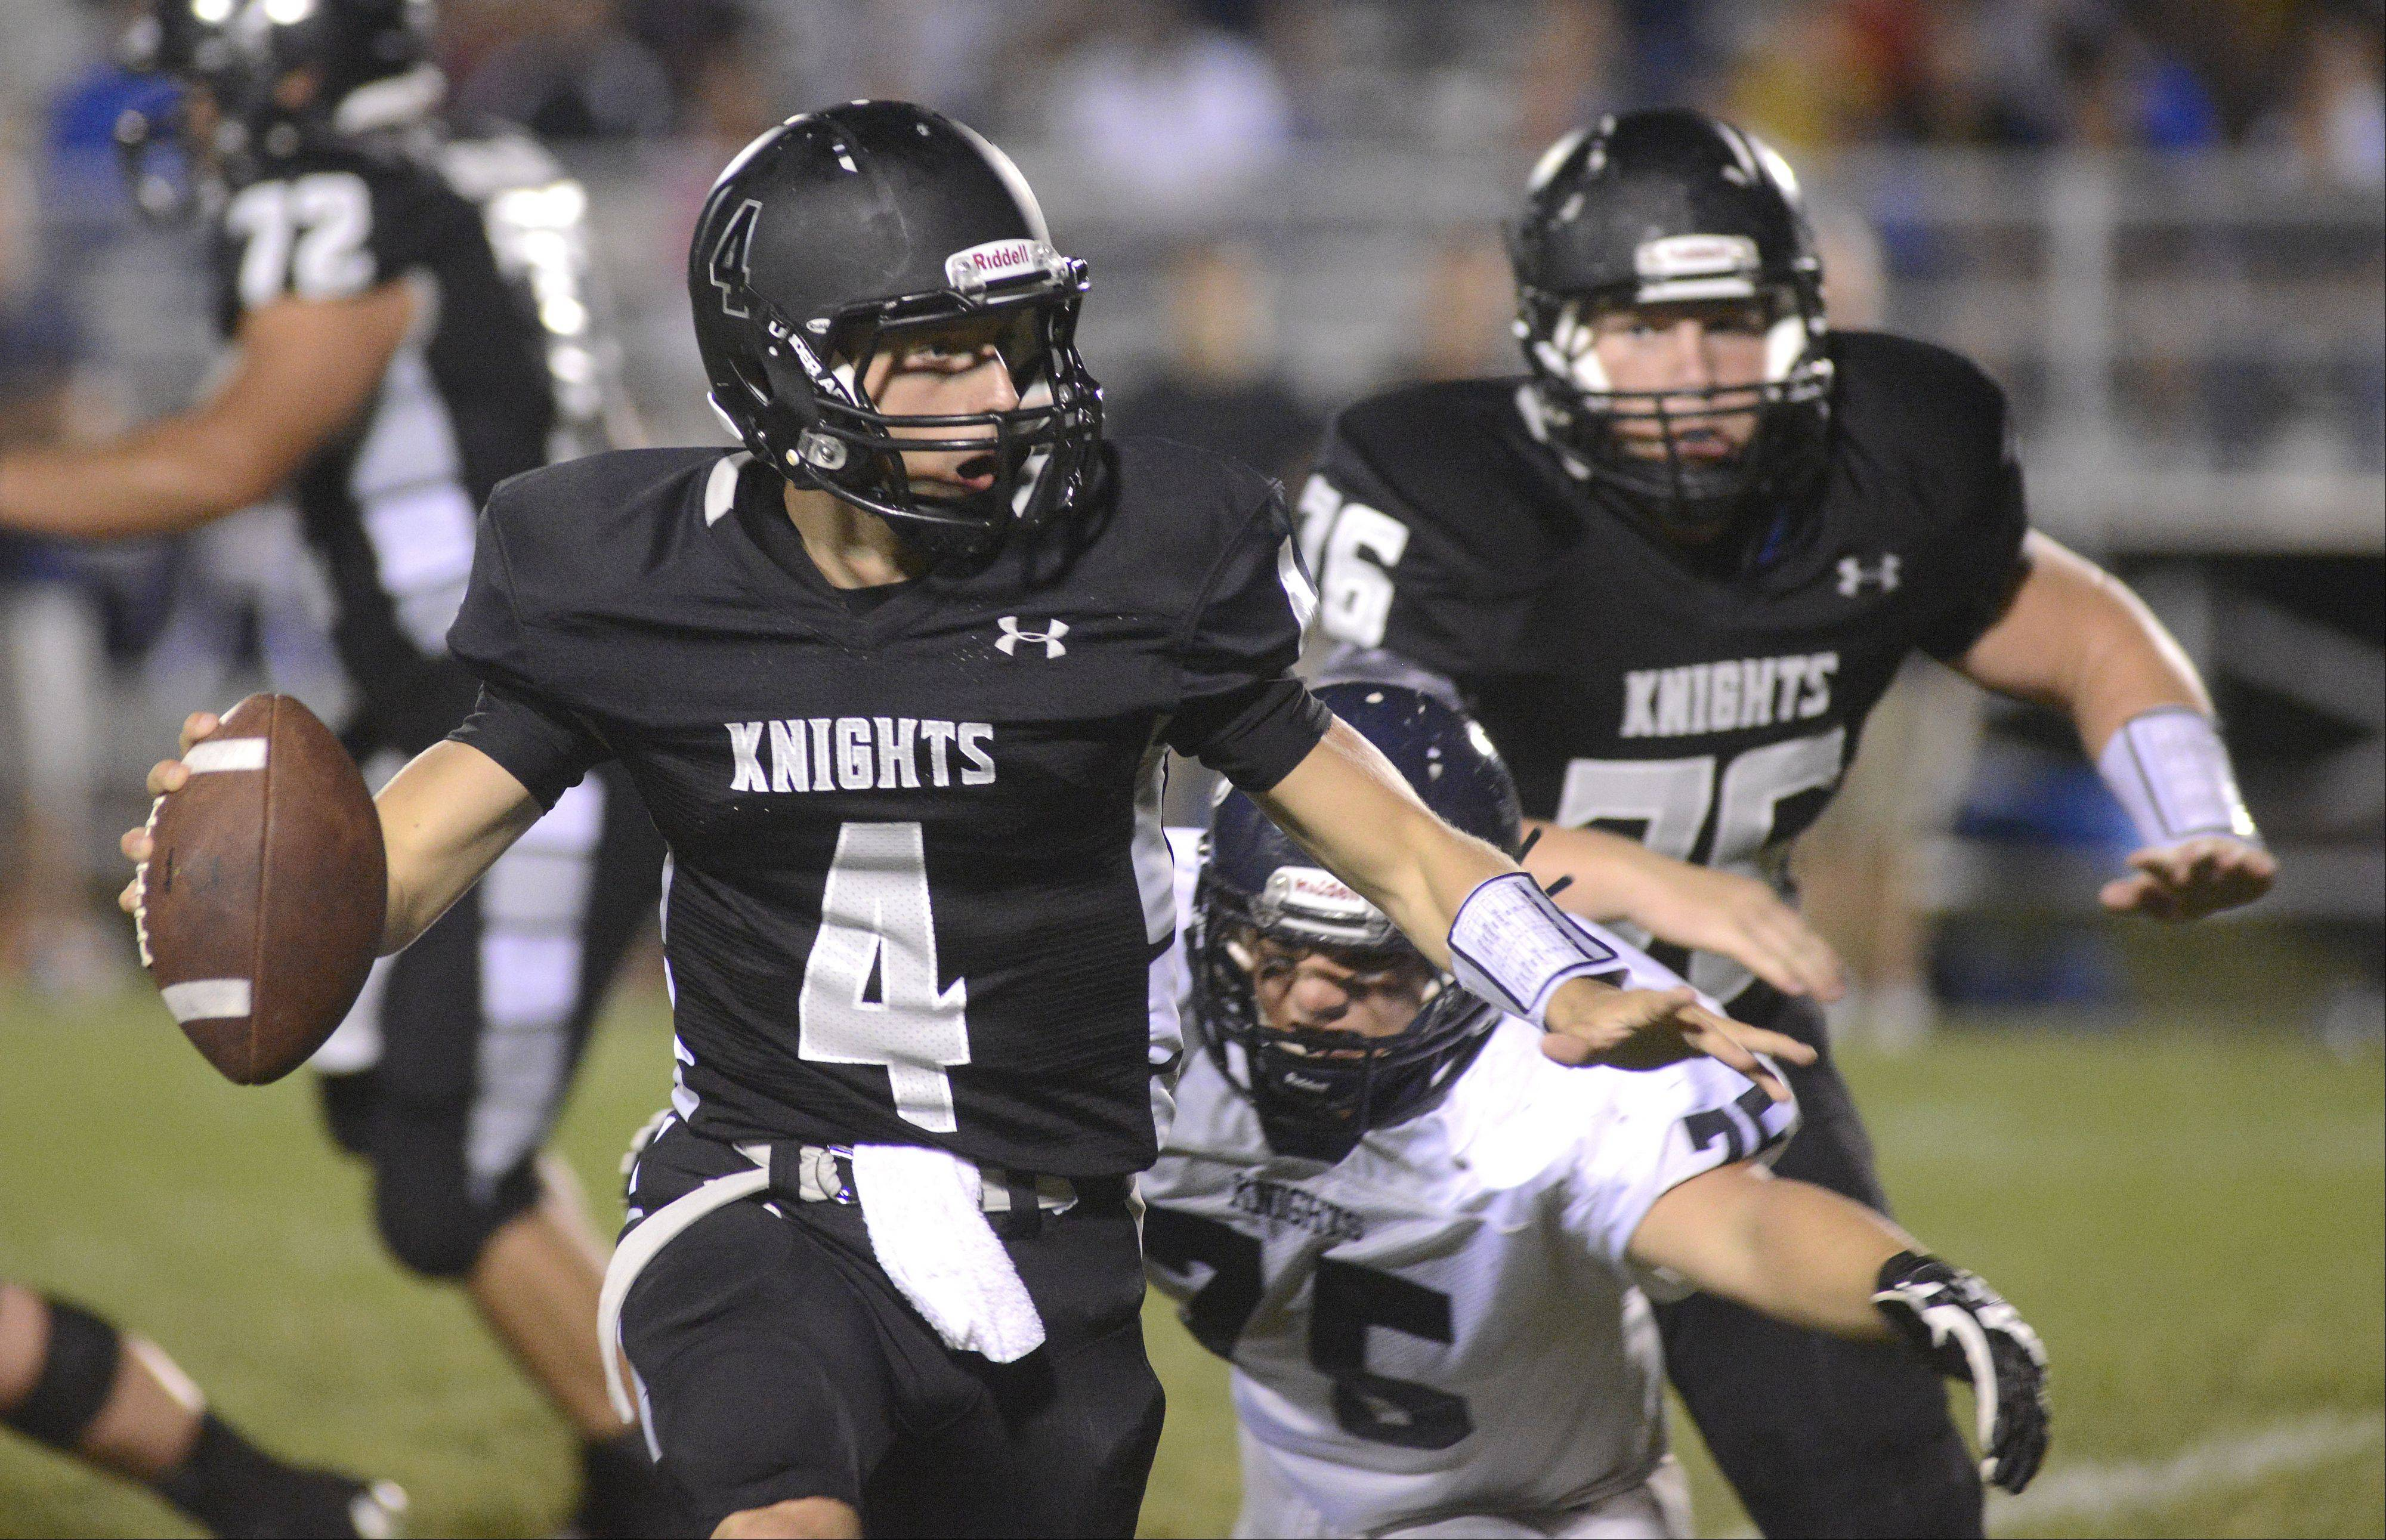 Along with Aurora Christian and Marmion, Kaneland � with quarterback Drew David fresh off a career-high 6 touchdowns in last Friday�s win � takes a 4-0 record into its Week 5 game.